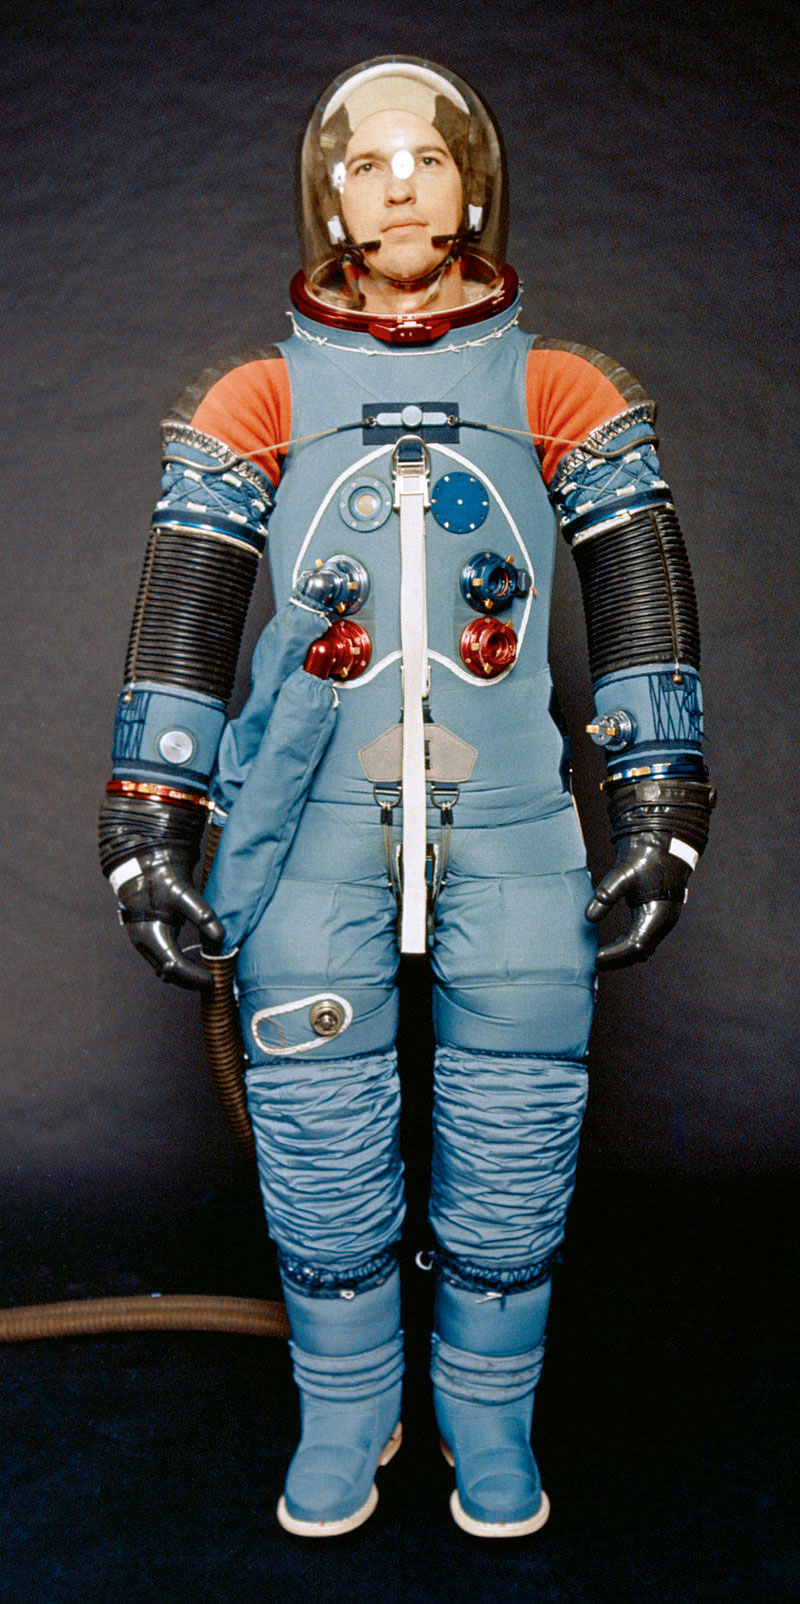 apollo a7l spacesuit - photo #4